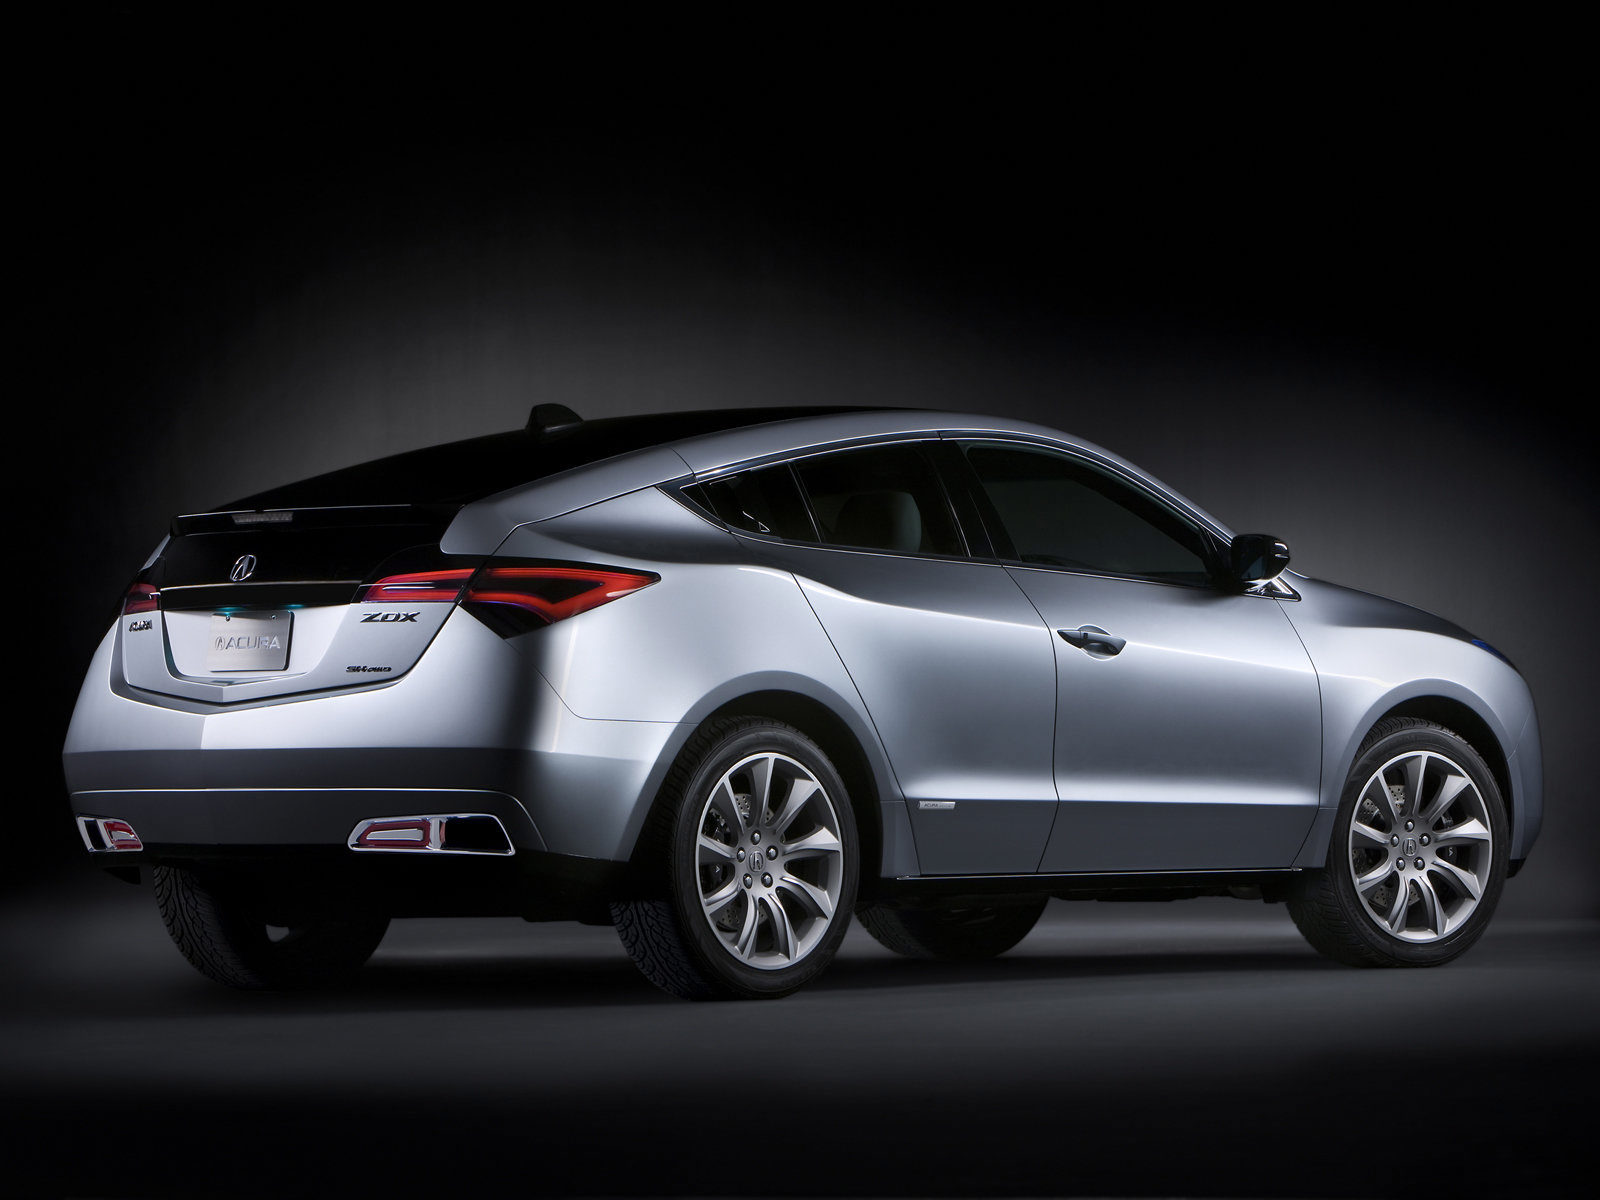 Acura Zdx For Sale >> Japanese car wallpapers. 2009 ACURA ZDX Concept